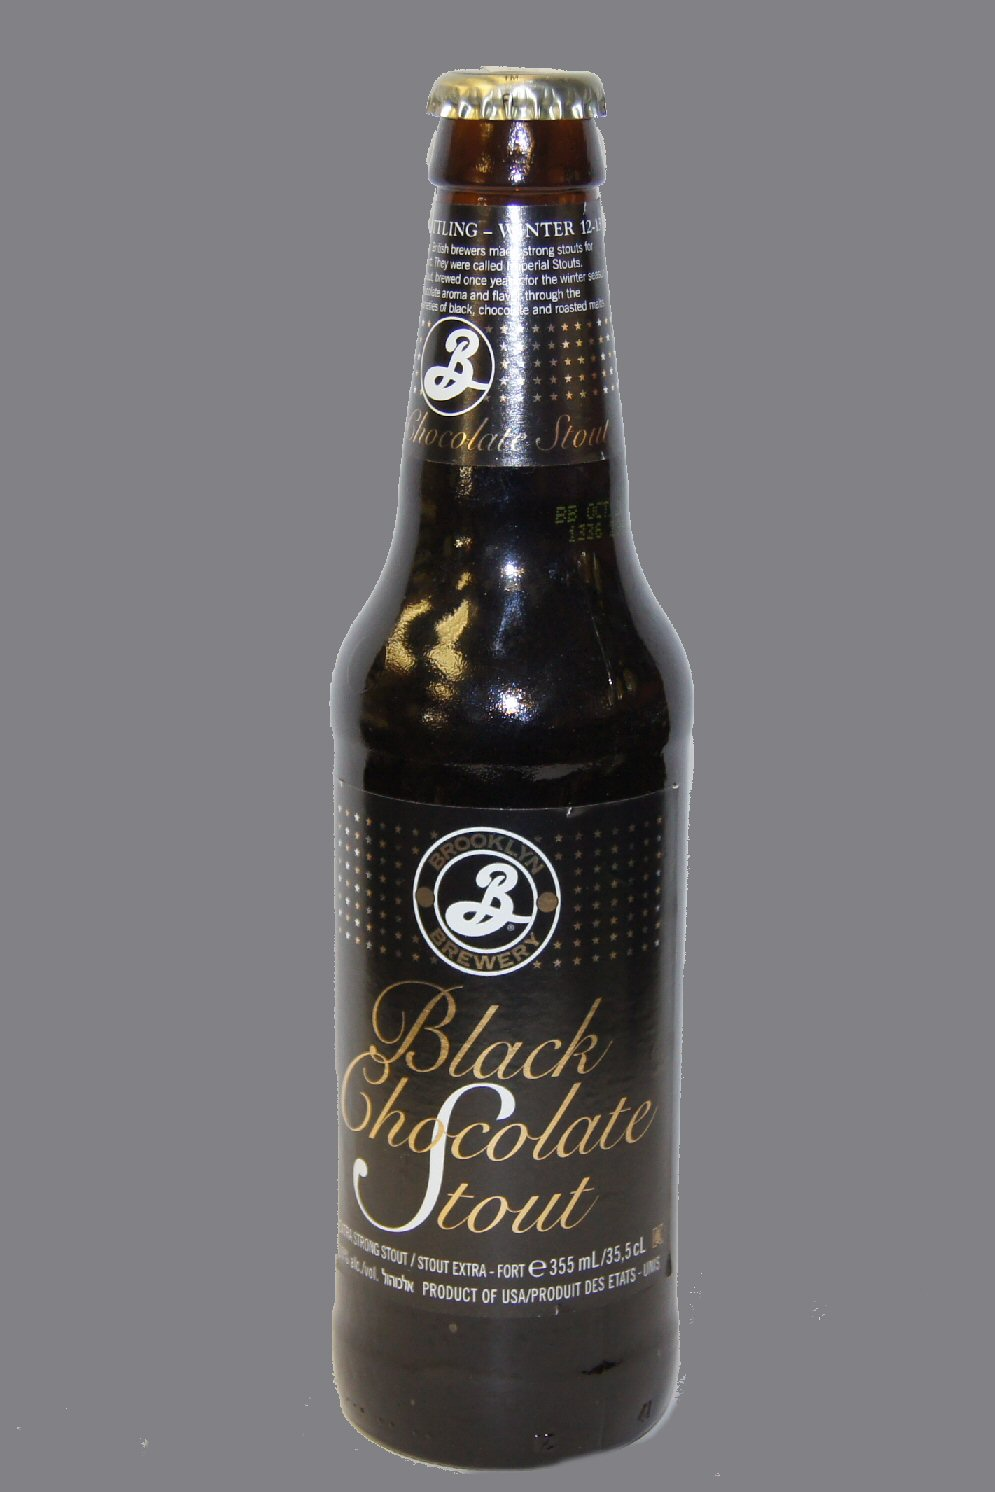 BROOKLYN-Black Chocolat Stout.jpg